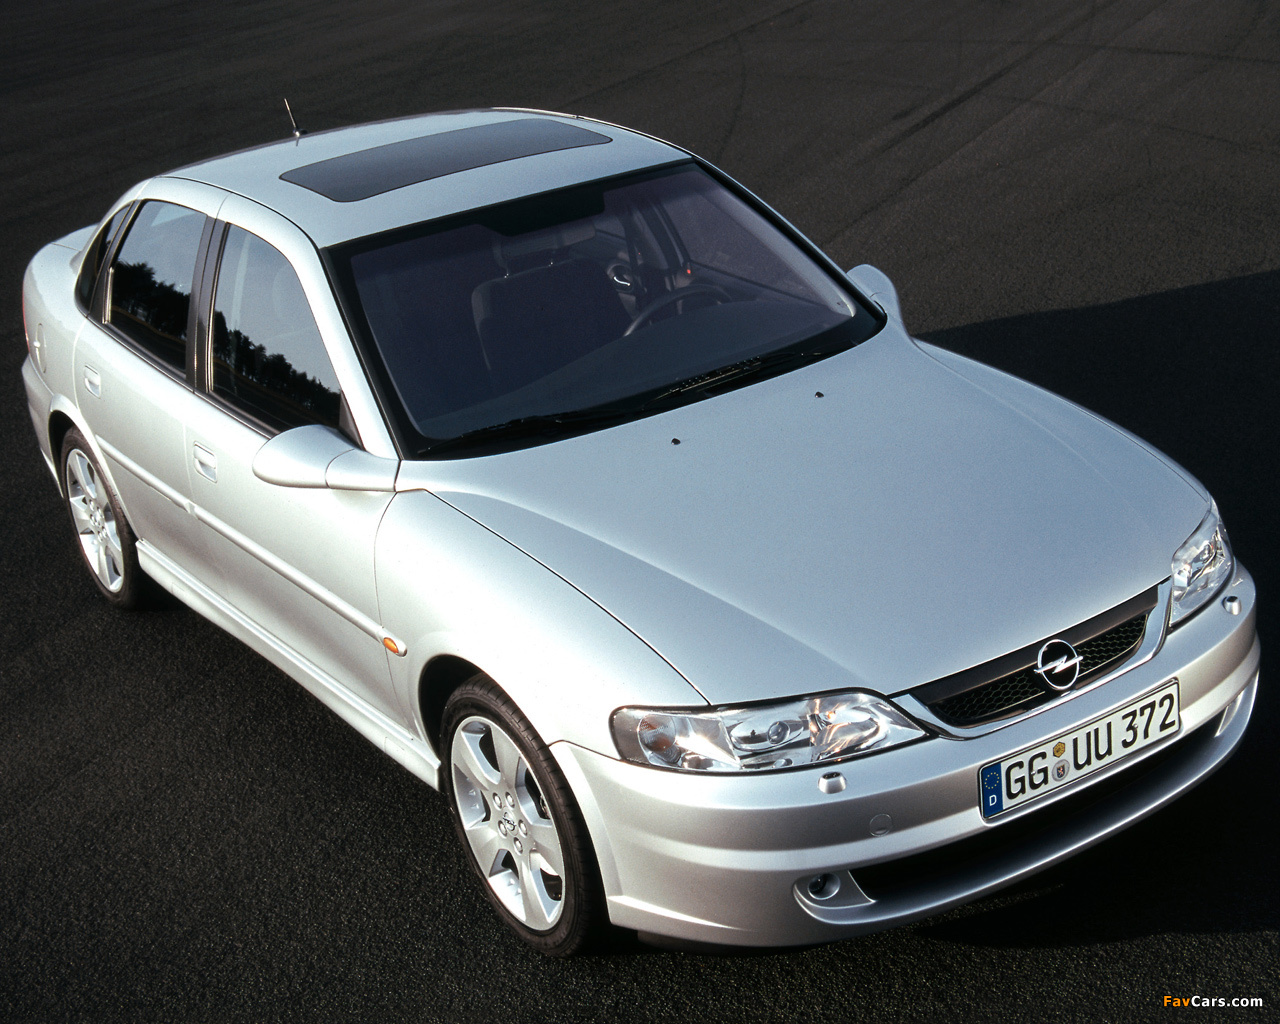 opel vectra b 2002 images galleries with a bite. Black Bedroom Furniture Sets. Home Design Ideas